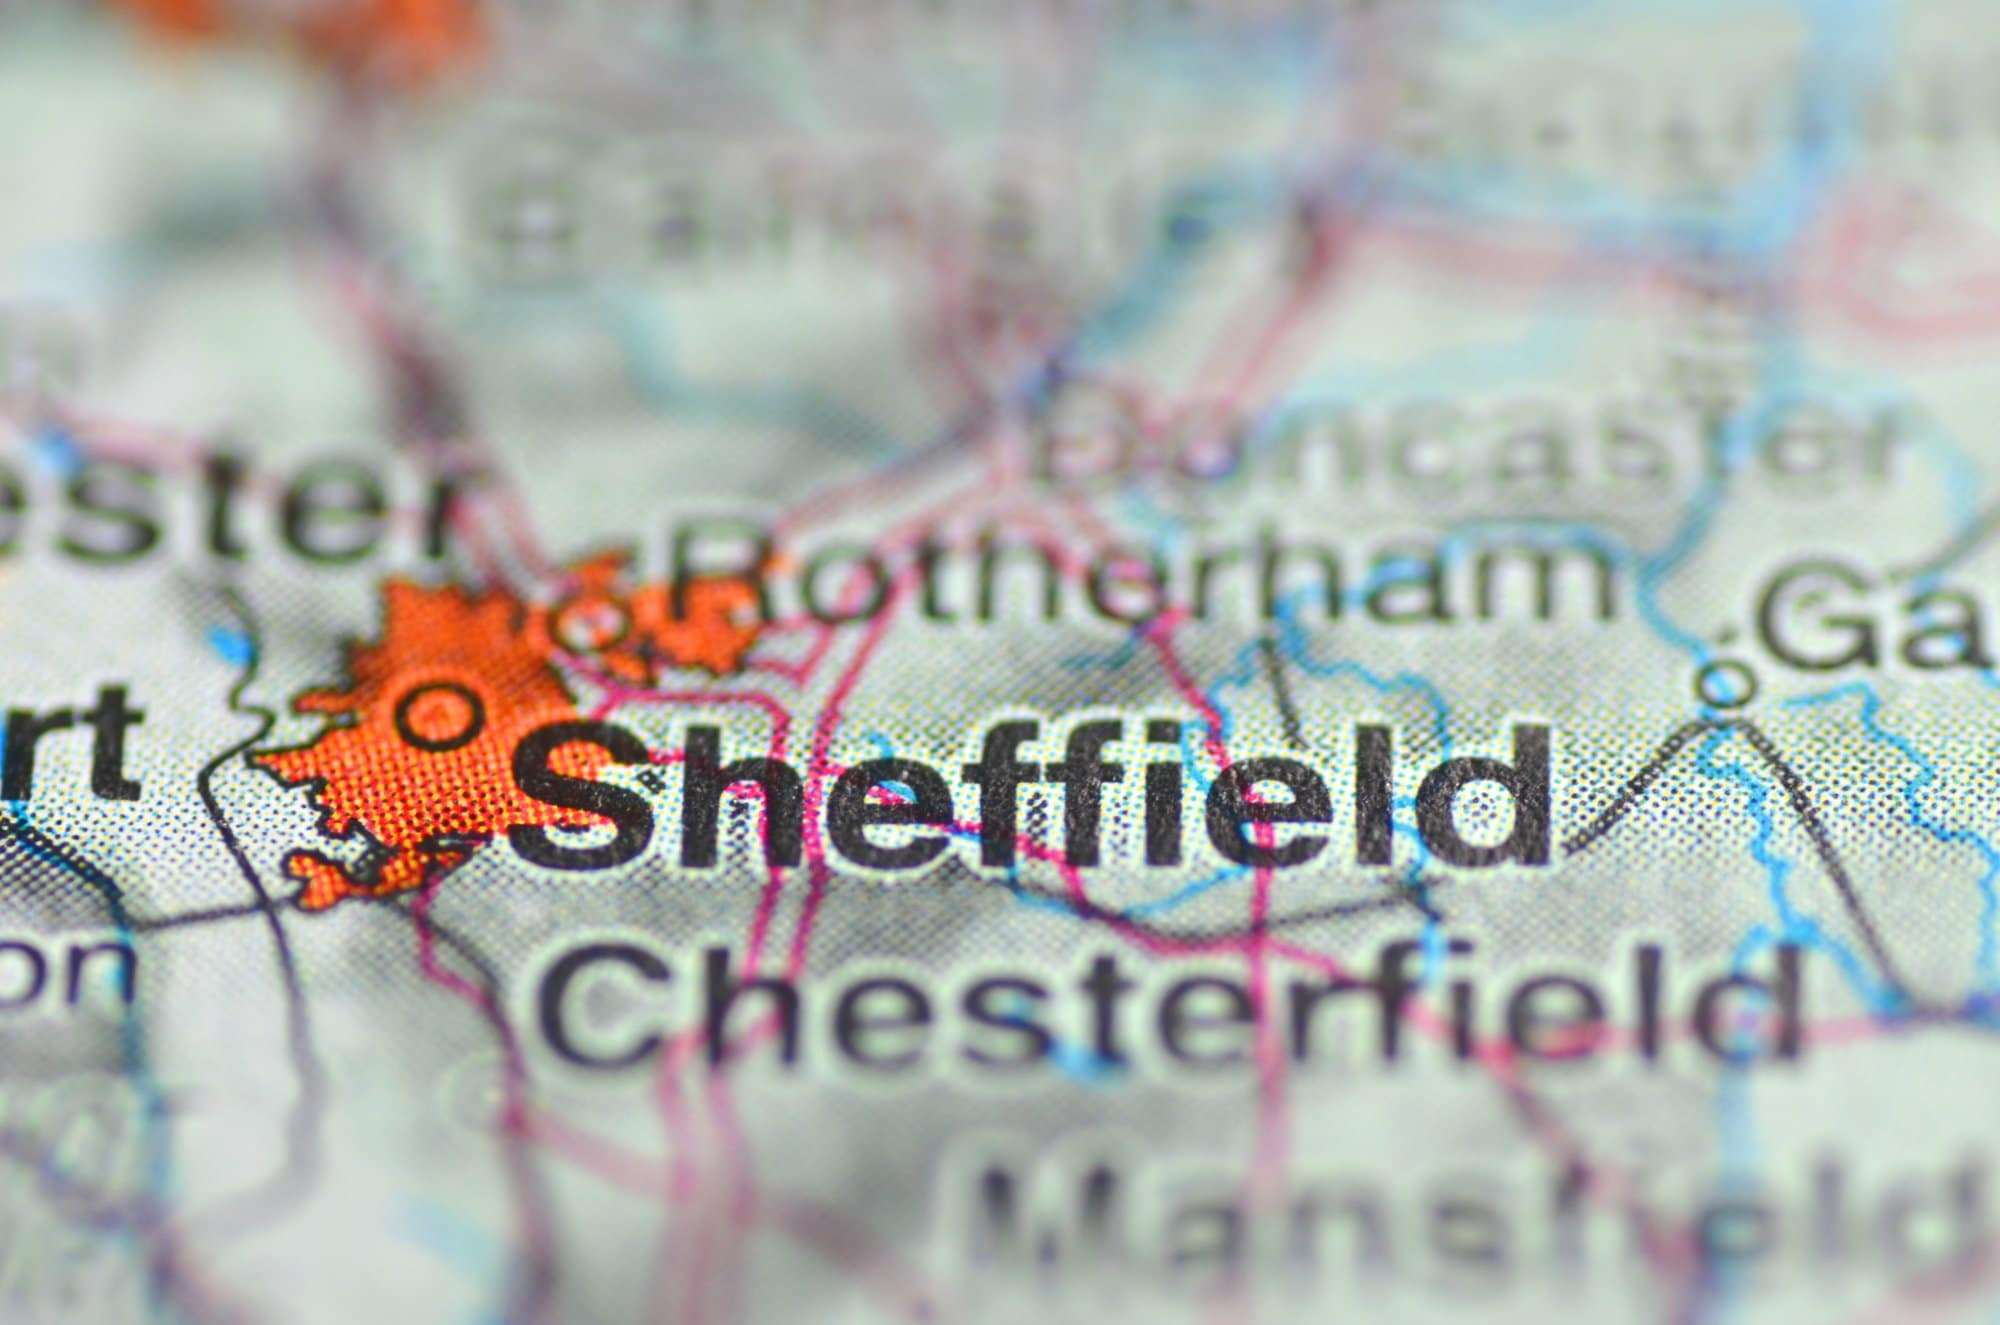 A map of Sheffield